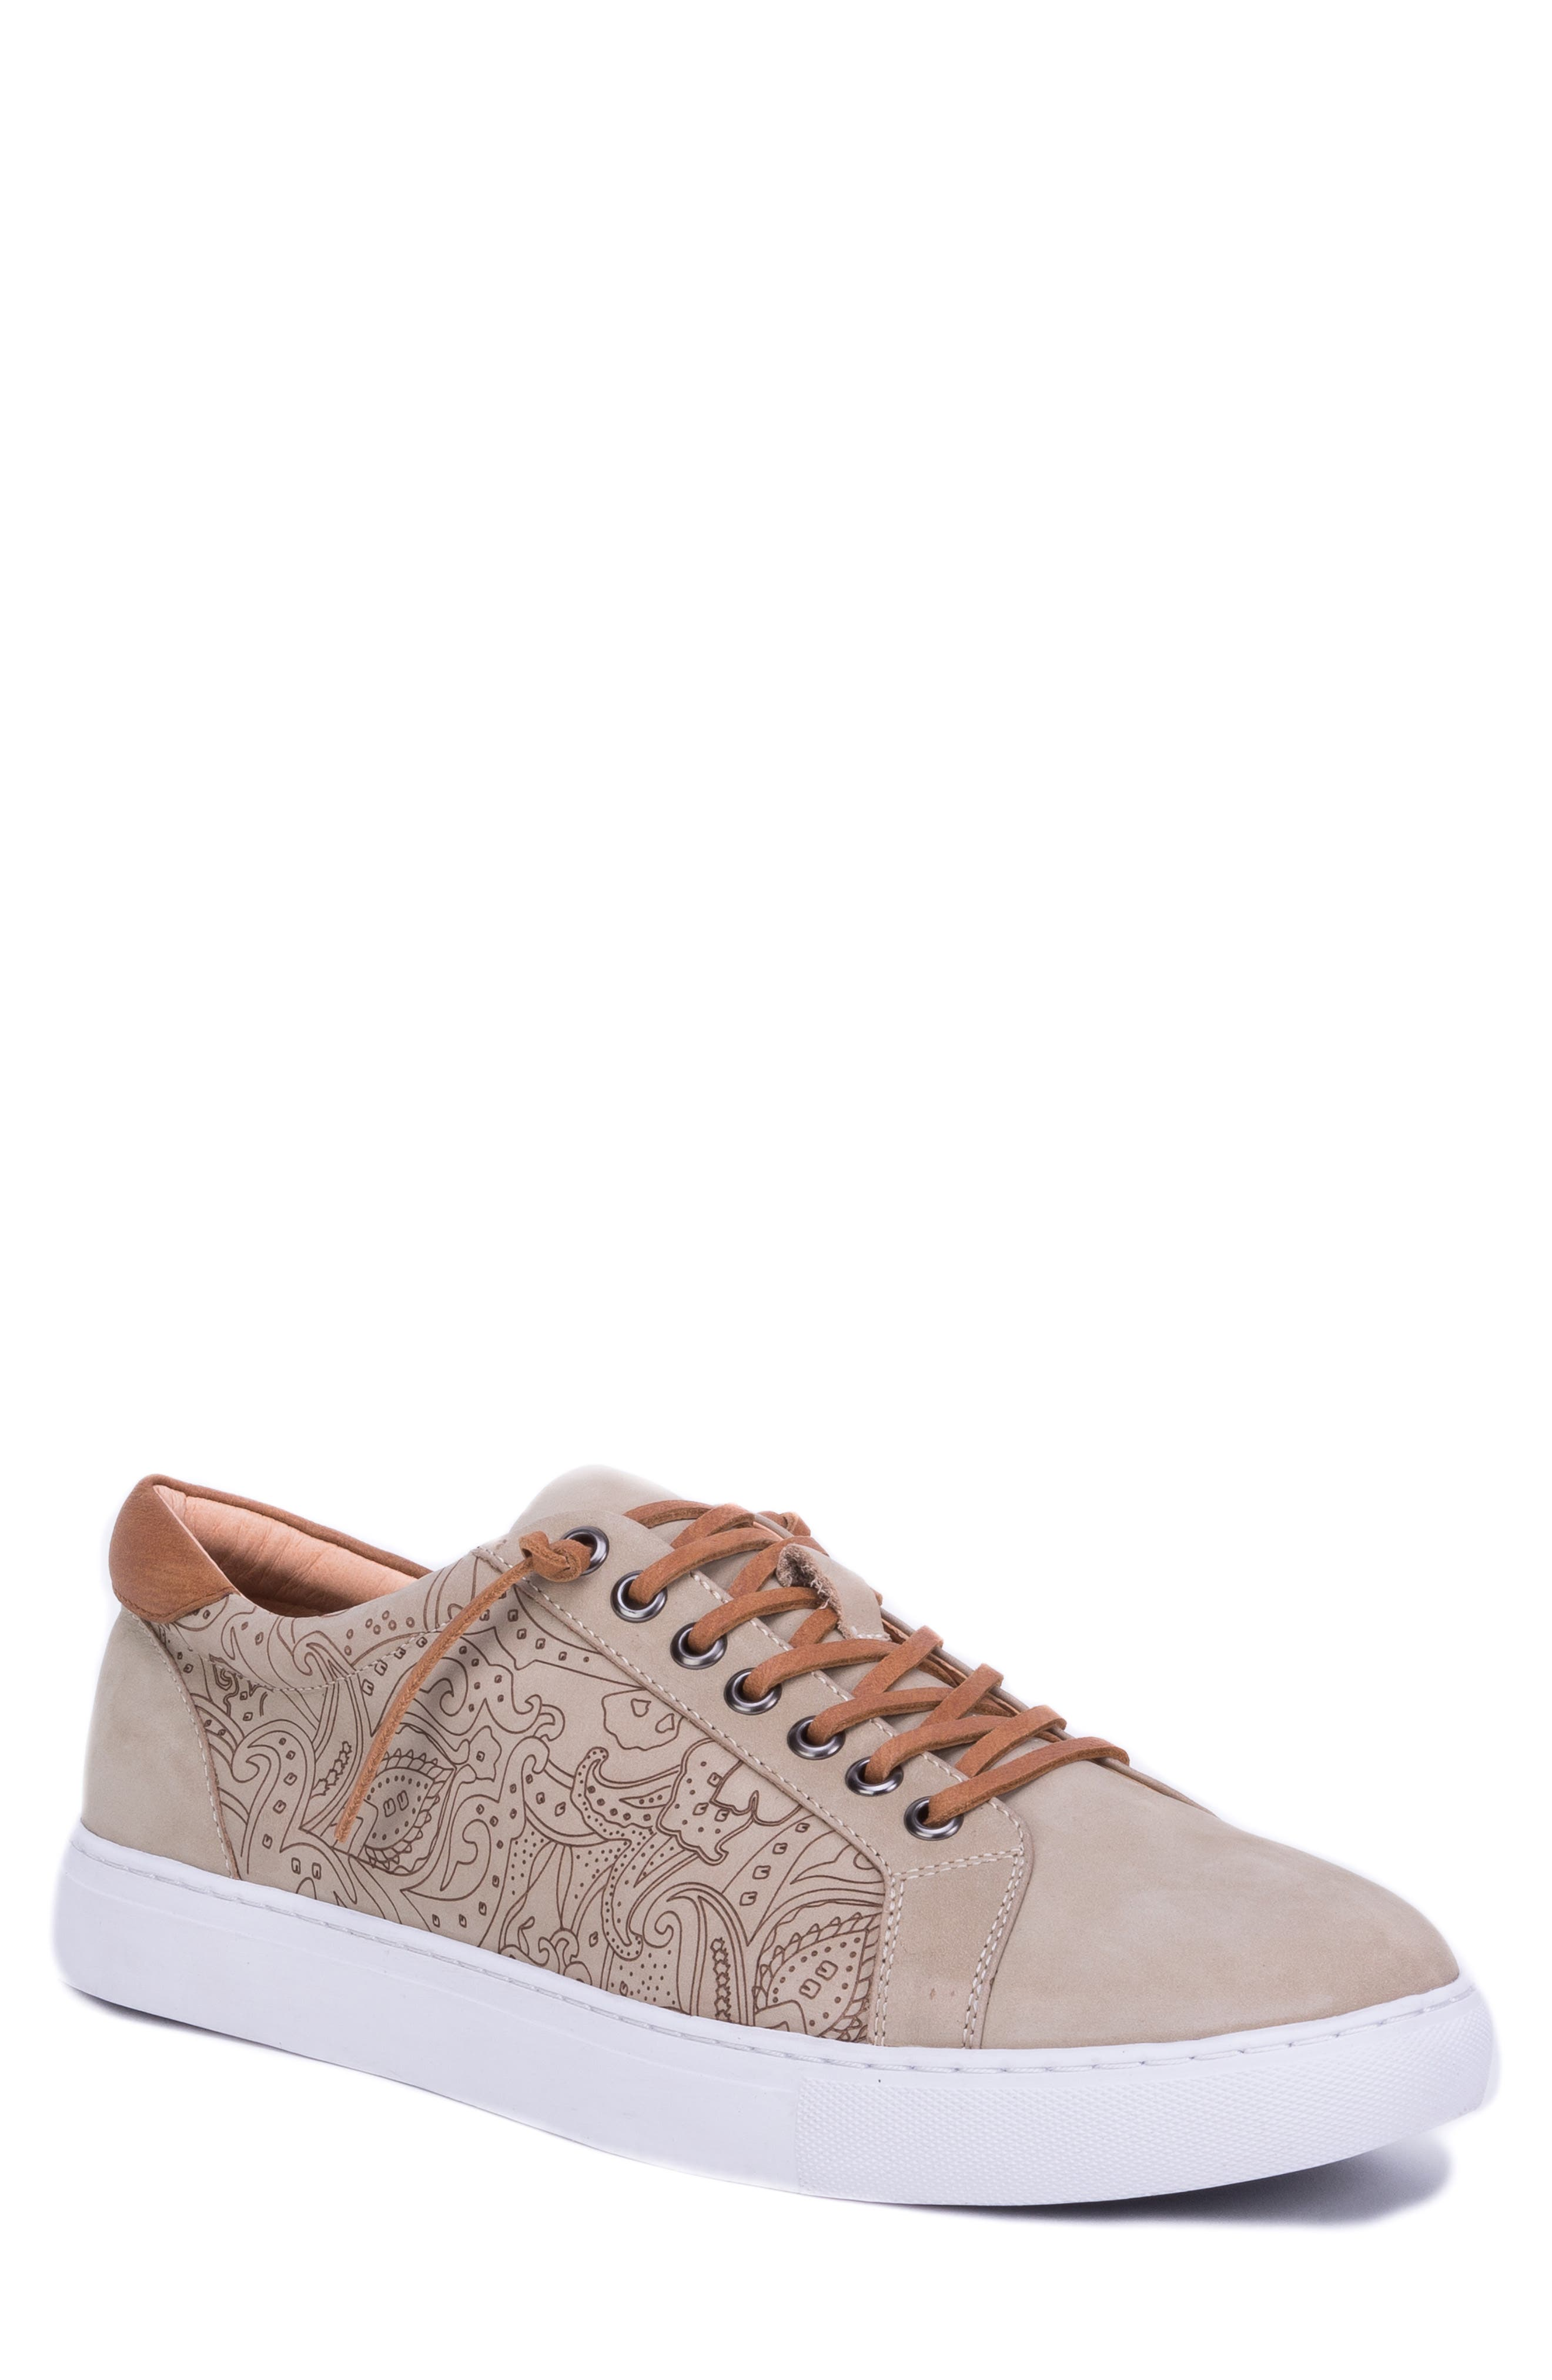 Lima Sneaker, Main, color, SAND LEATHER